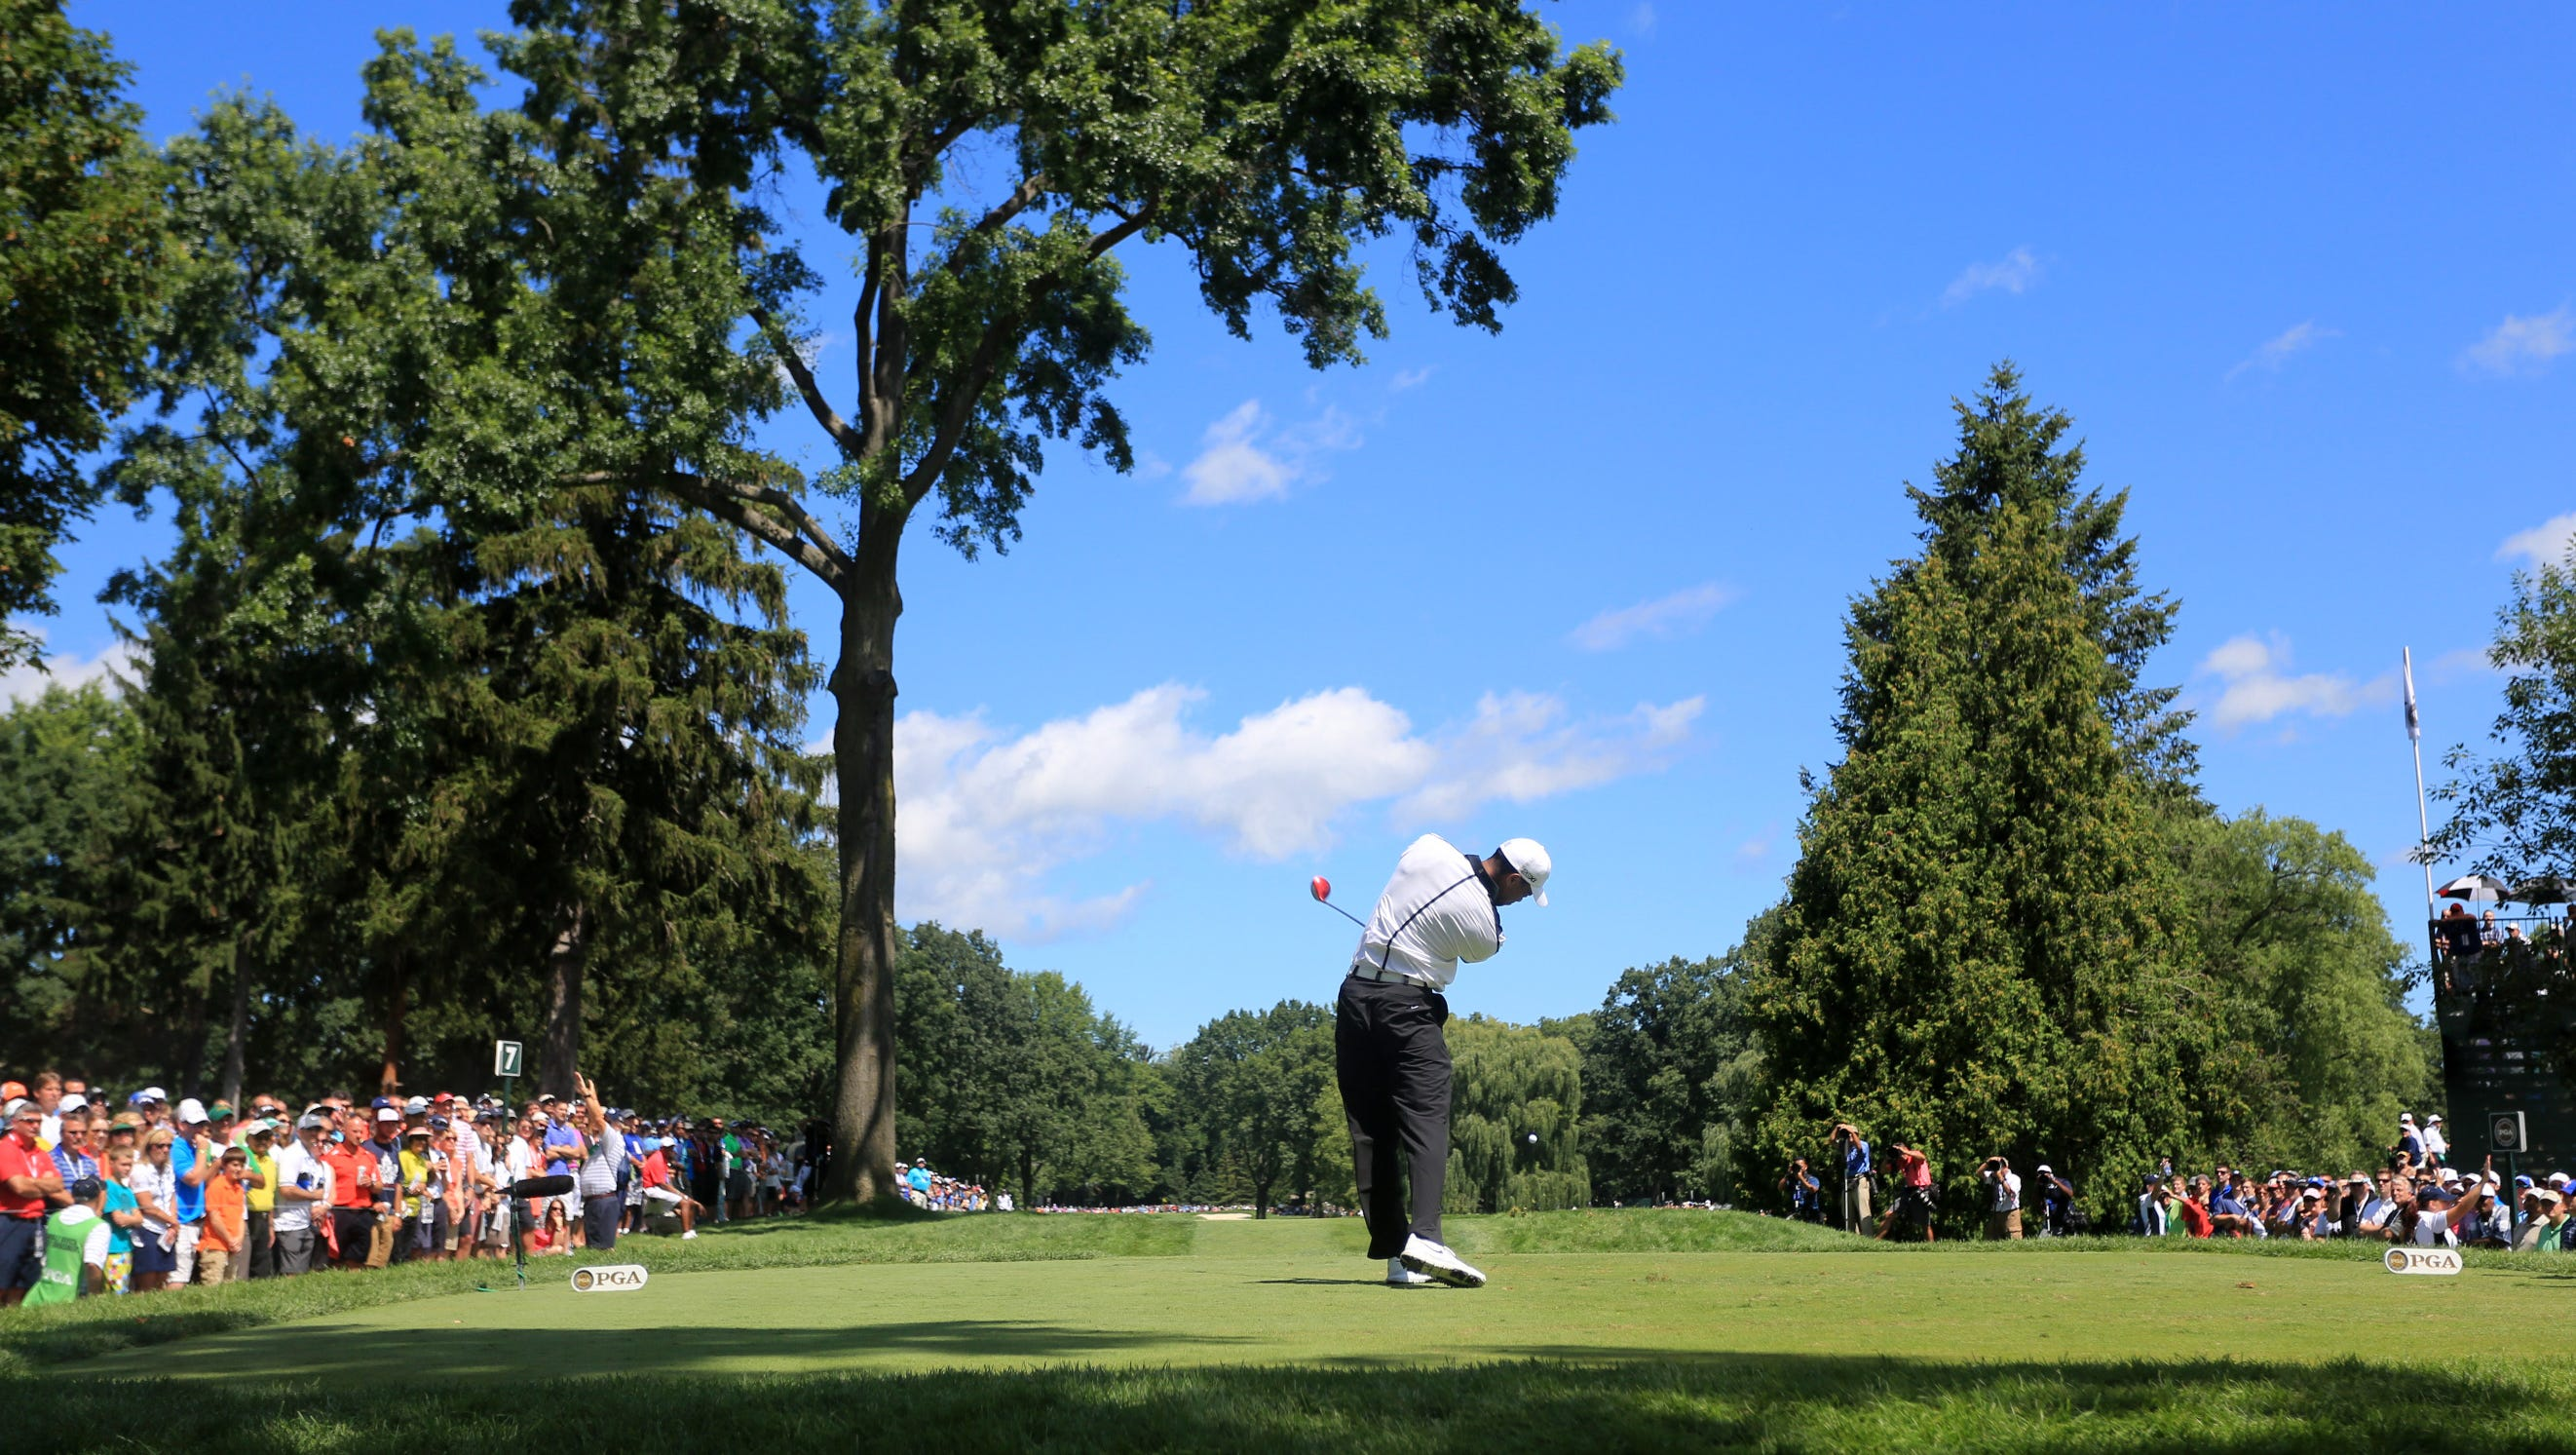 Aug 10, 2013; Rochester, NY, USA; Tiger Woods tees off on the 7th hole during the third round of the 95th PGA Championship at Oak Hill Country Club.. Mandatory Credit: Allan Henry-USA TODAY Sports ORG XMIT: USATSI-120258 ORIG FILE ID:  20130810_pjc_ah2_028.JPG